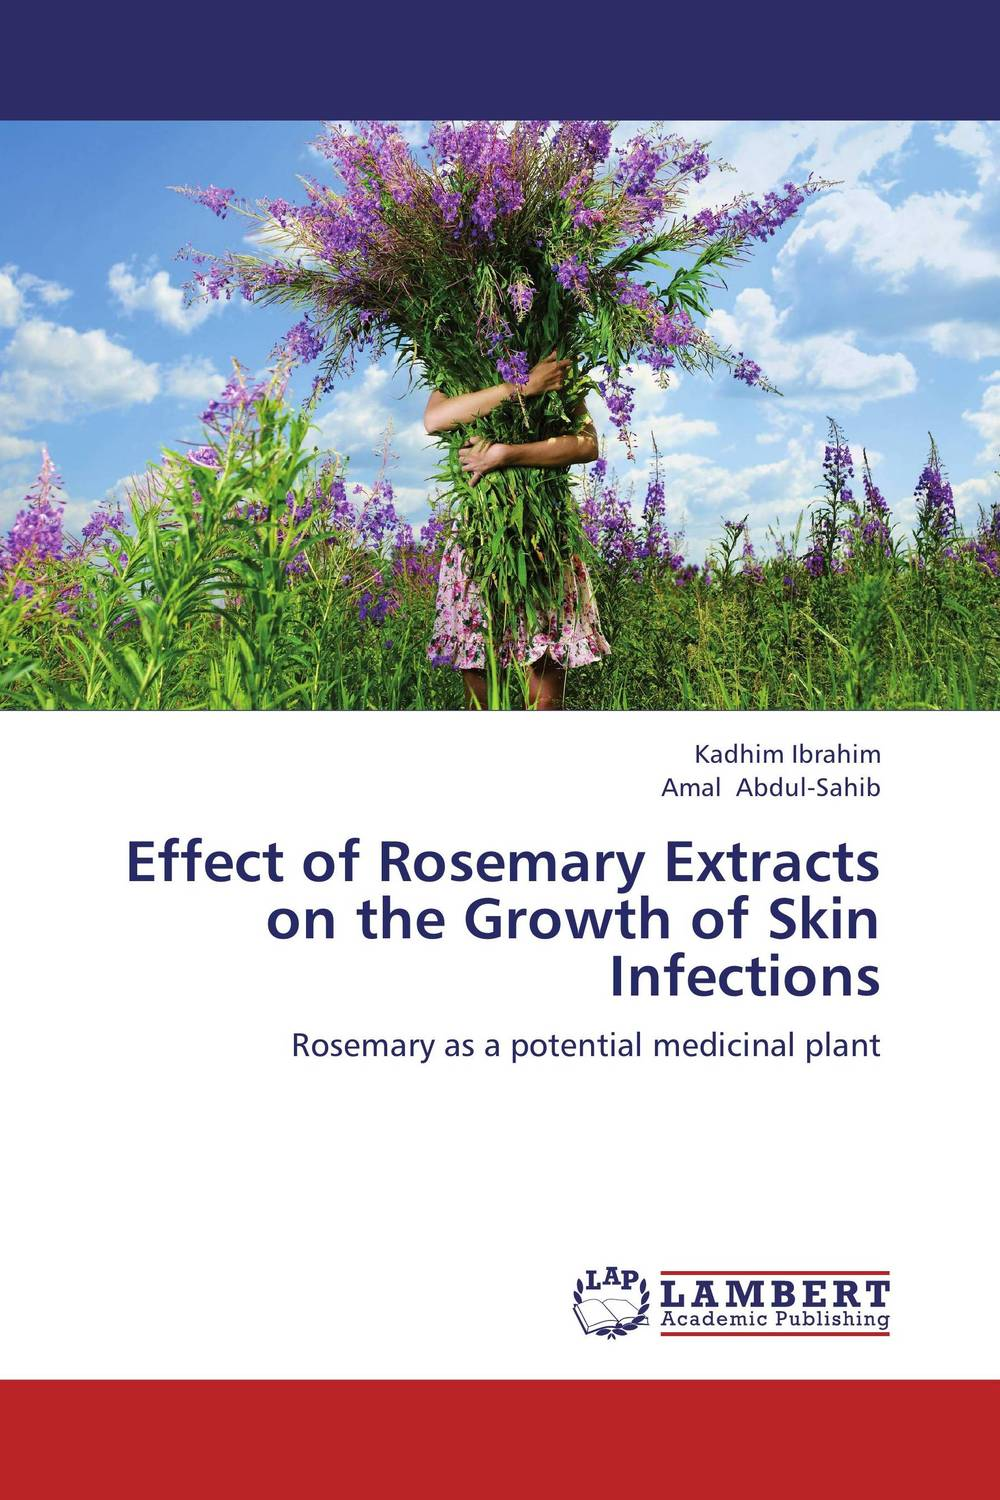 Effect of Rosemary Extracts on the Growth of Skin Infections helina befekadu the nature and effect of emotional violence